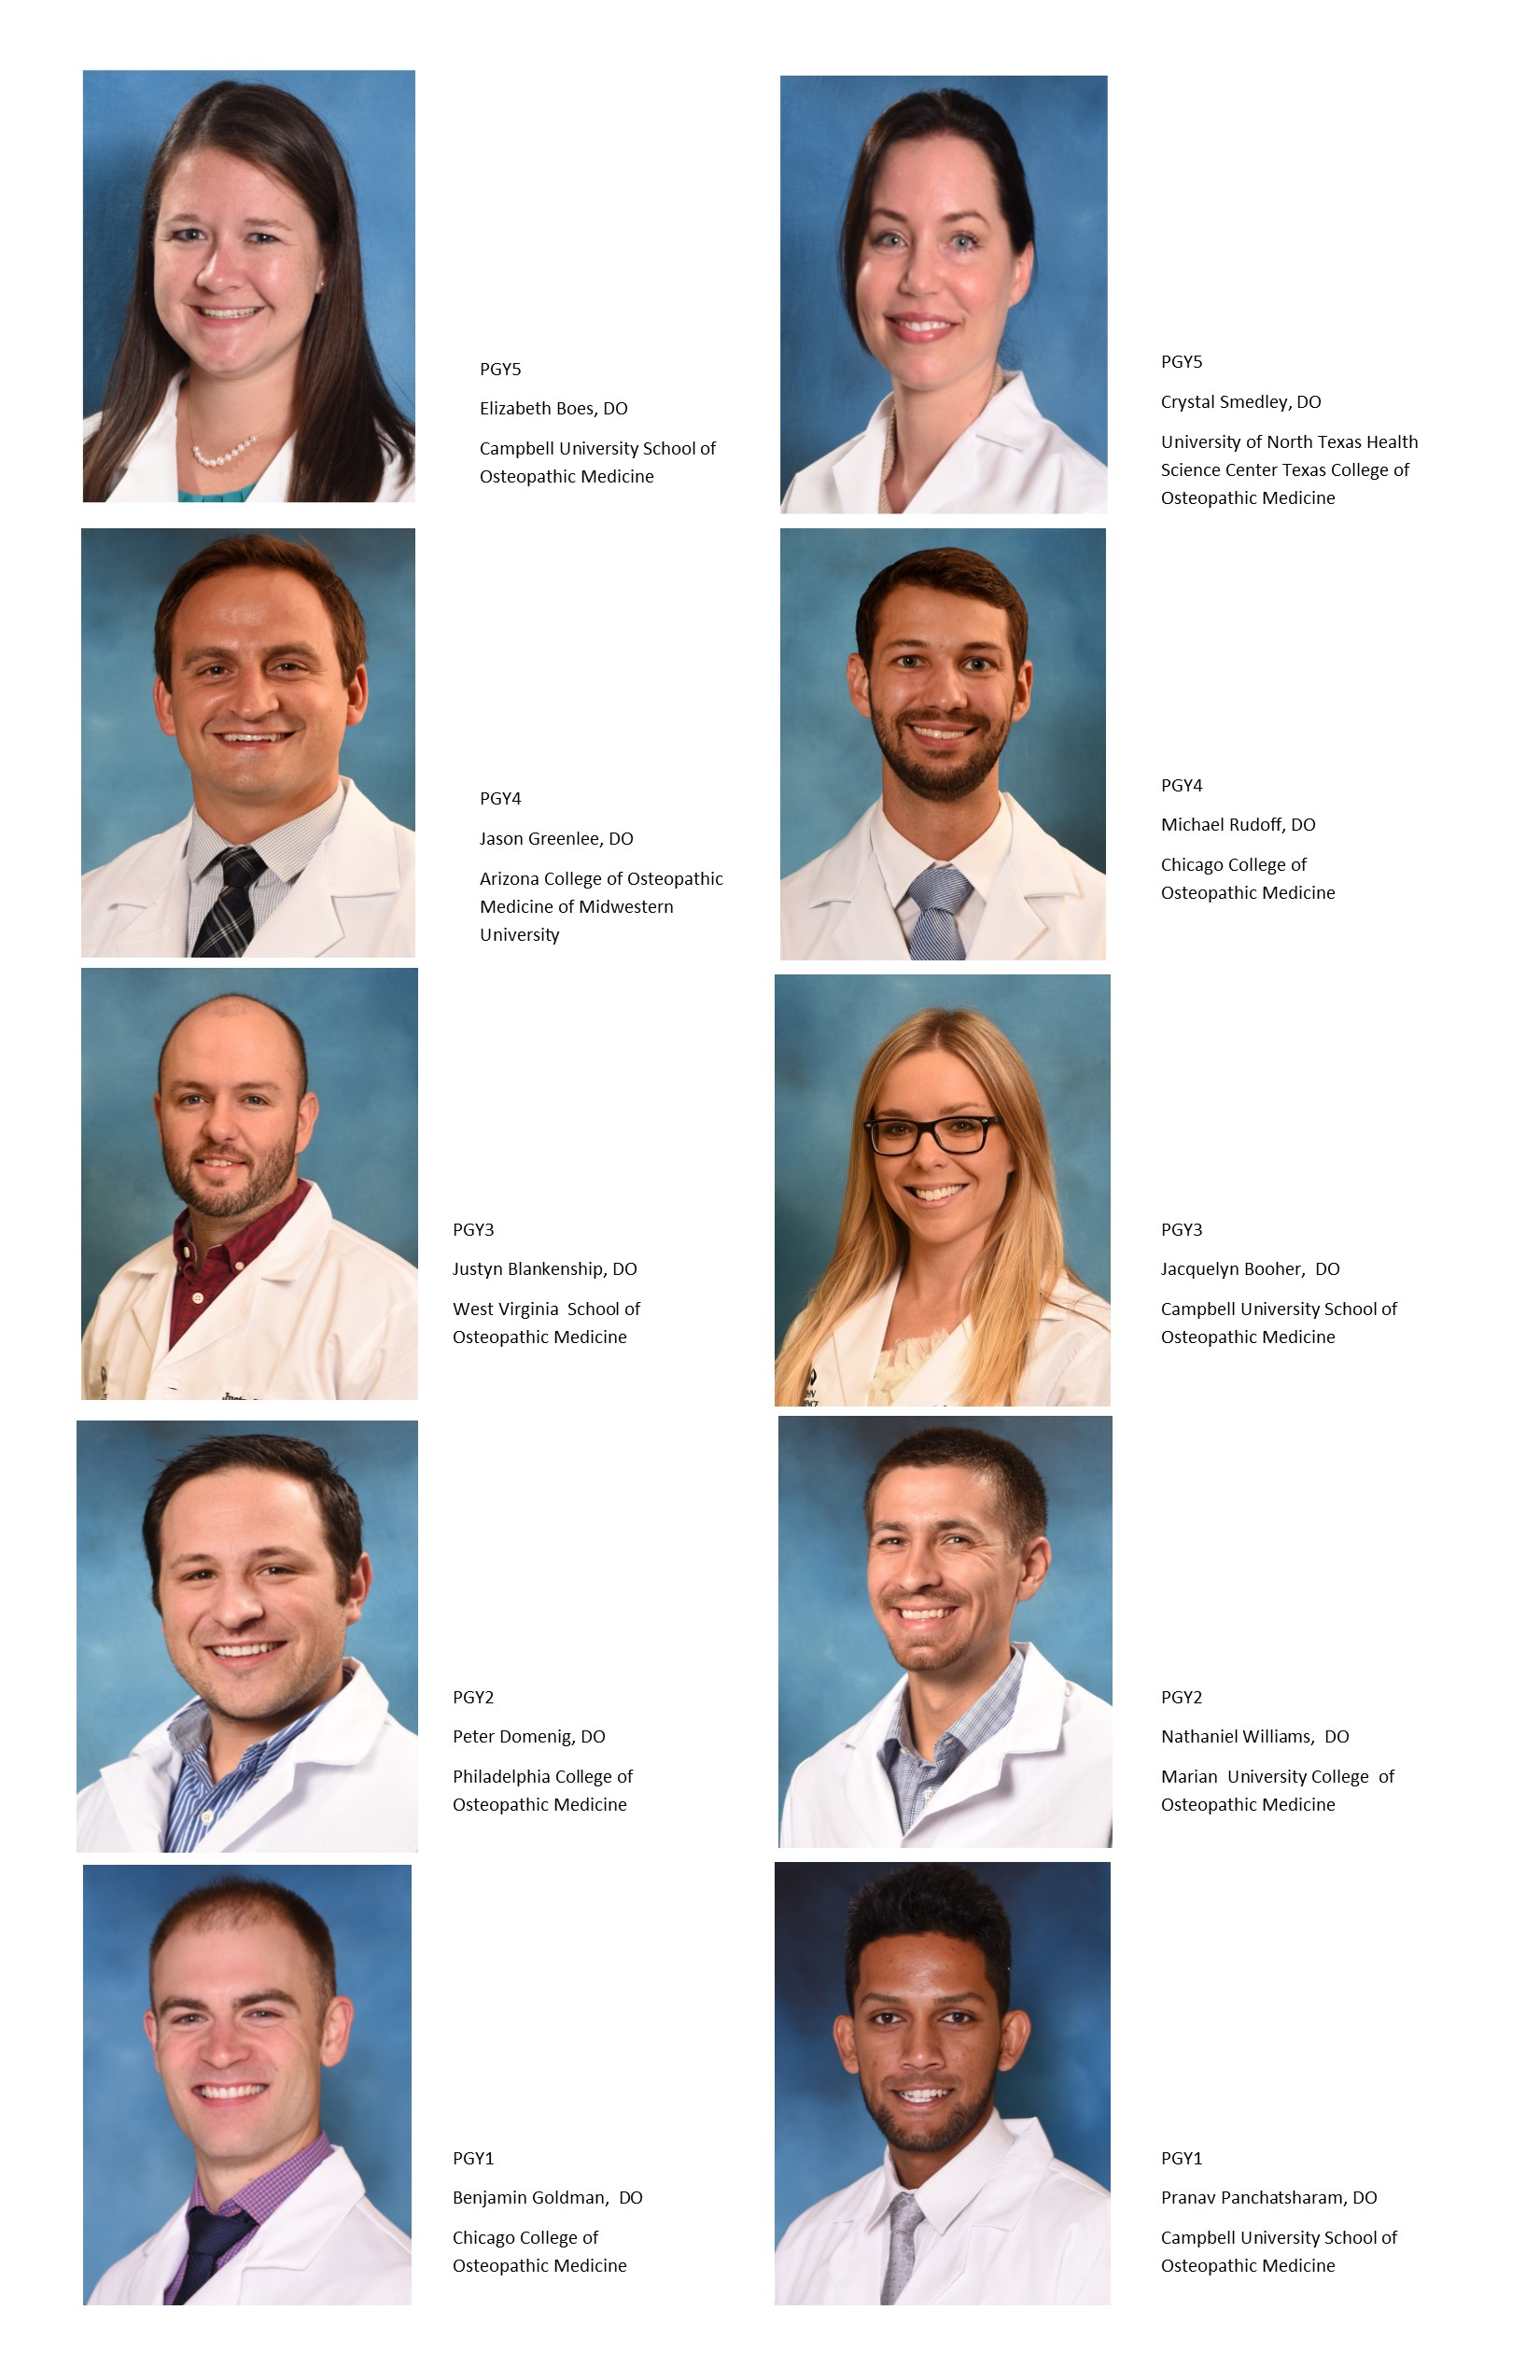 2019-2020 Urology Surgery Current Residents